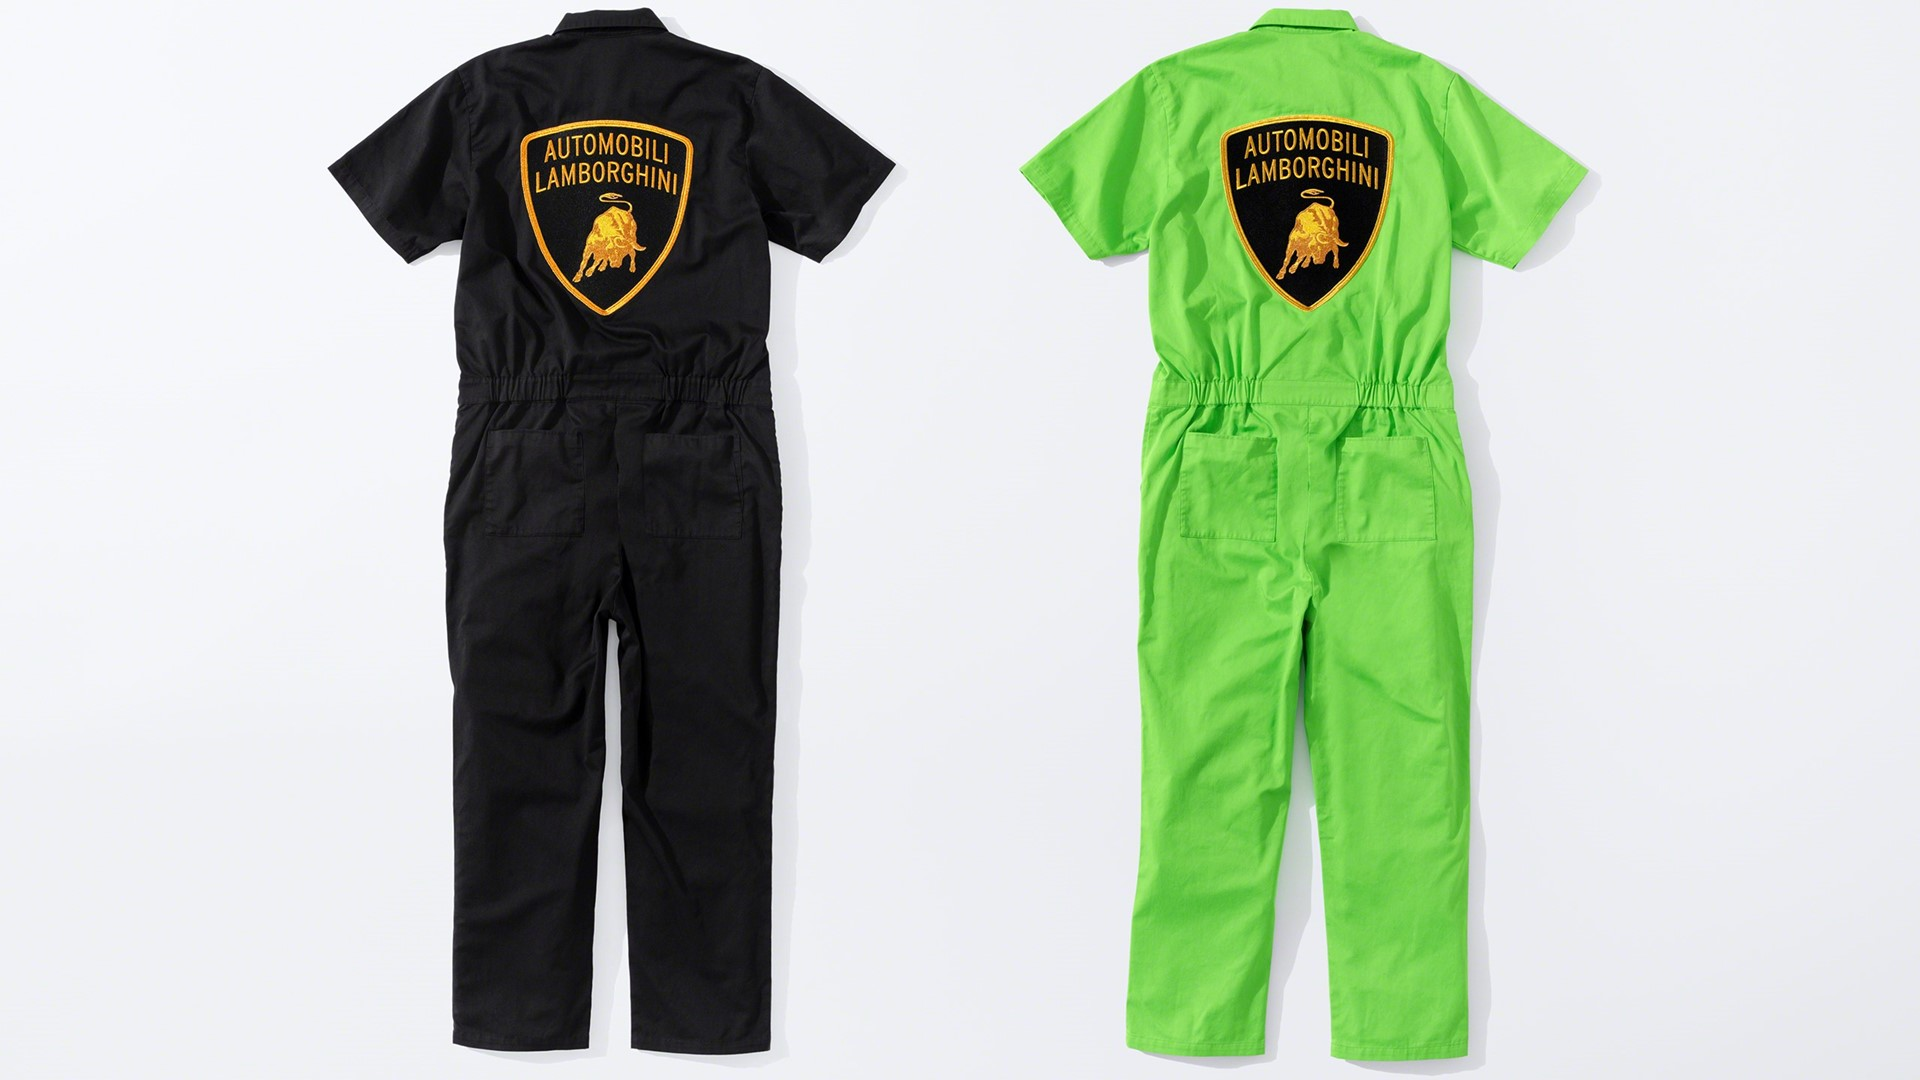 Automobili Lamborghini and Supreme come together on a new collection for Spring-Summer 2020 - Image 1